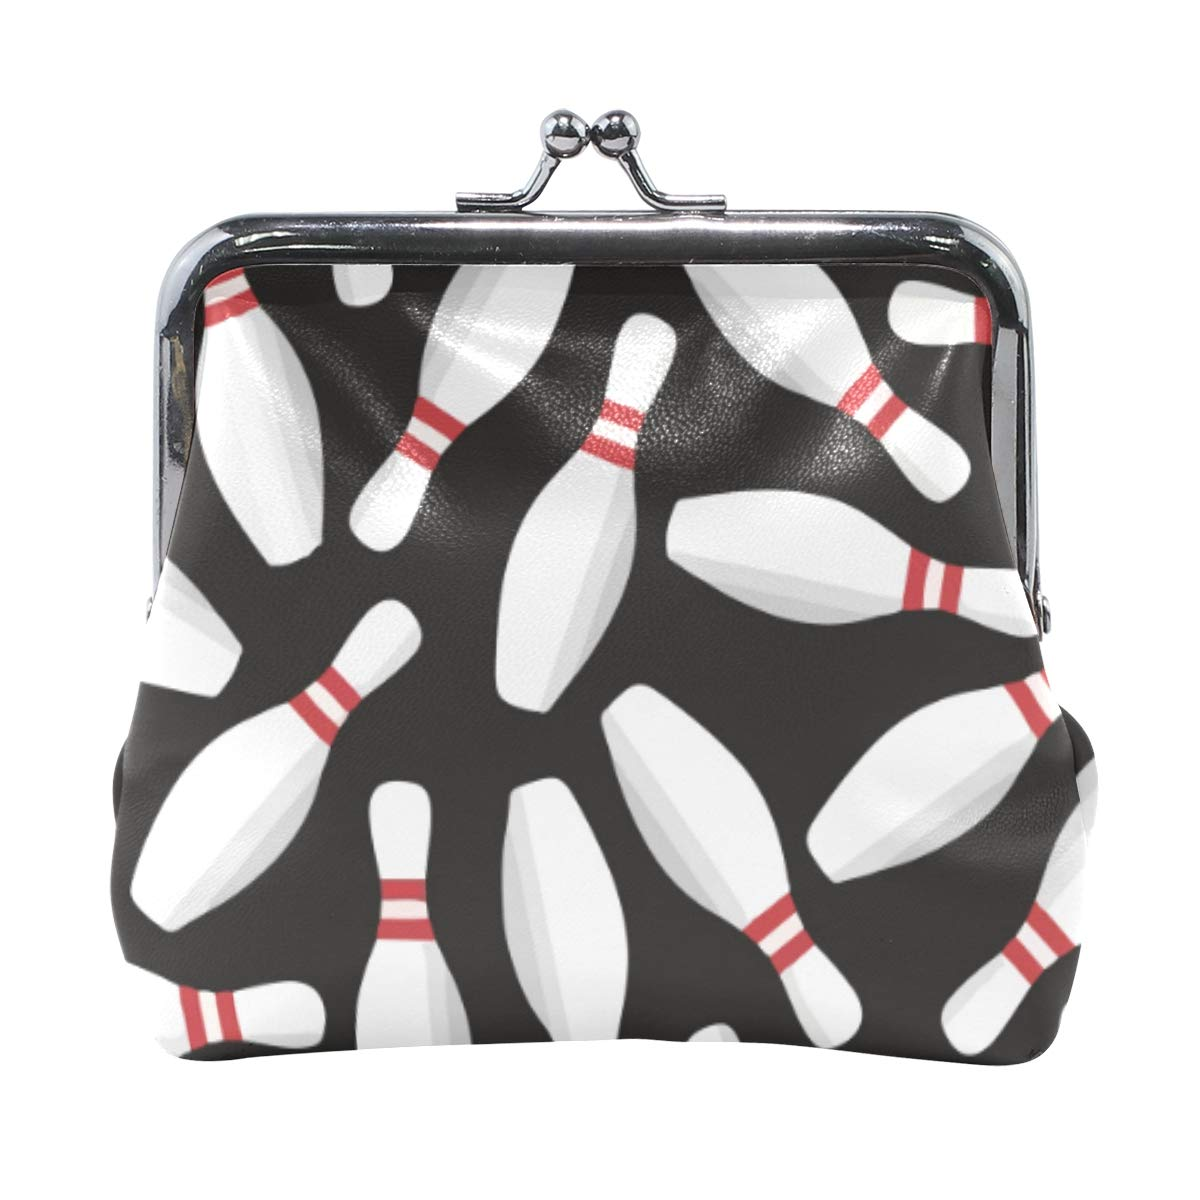 Bowling Black Pattern Coin Purse Buckle Vintage PU Pouch Kiss-lock Wallet for Women Girl